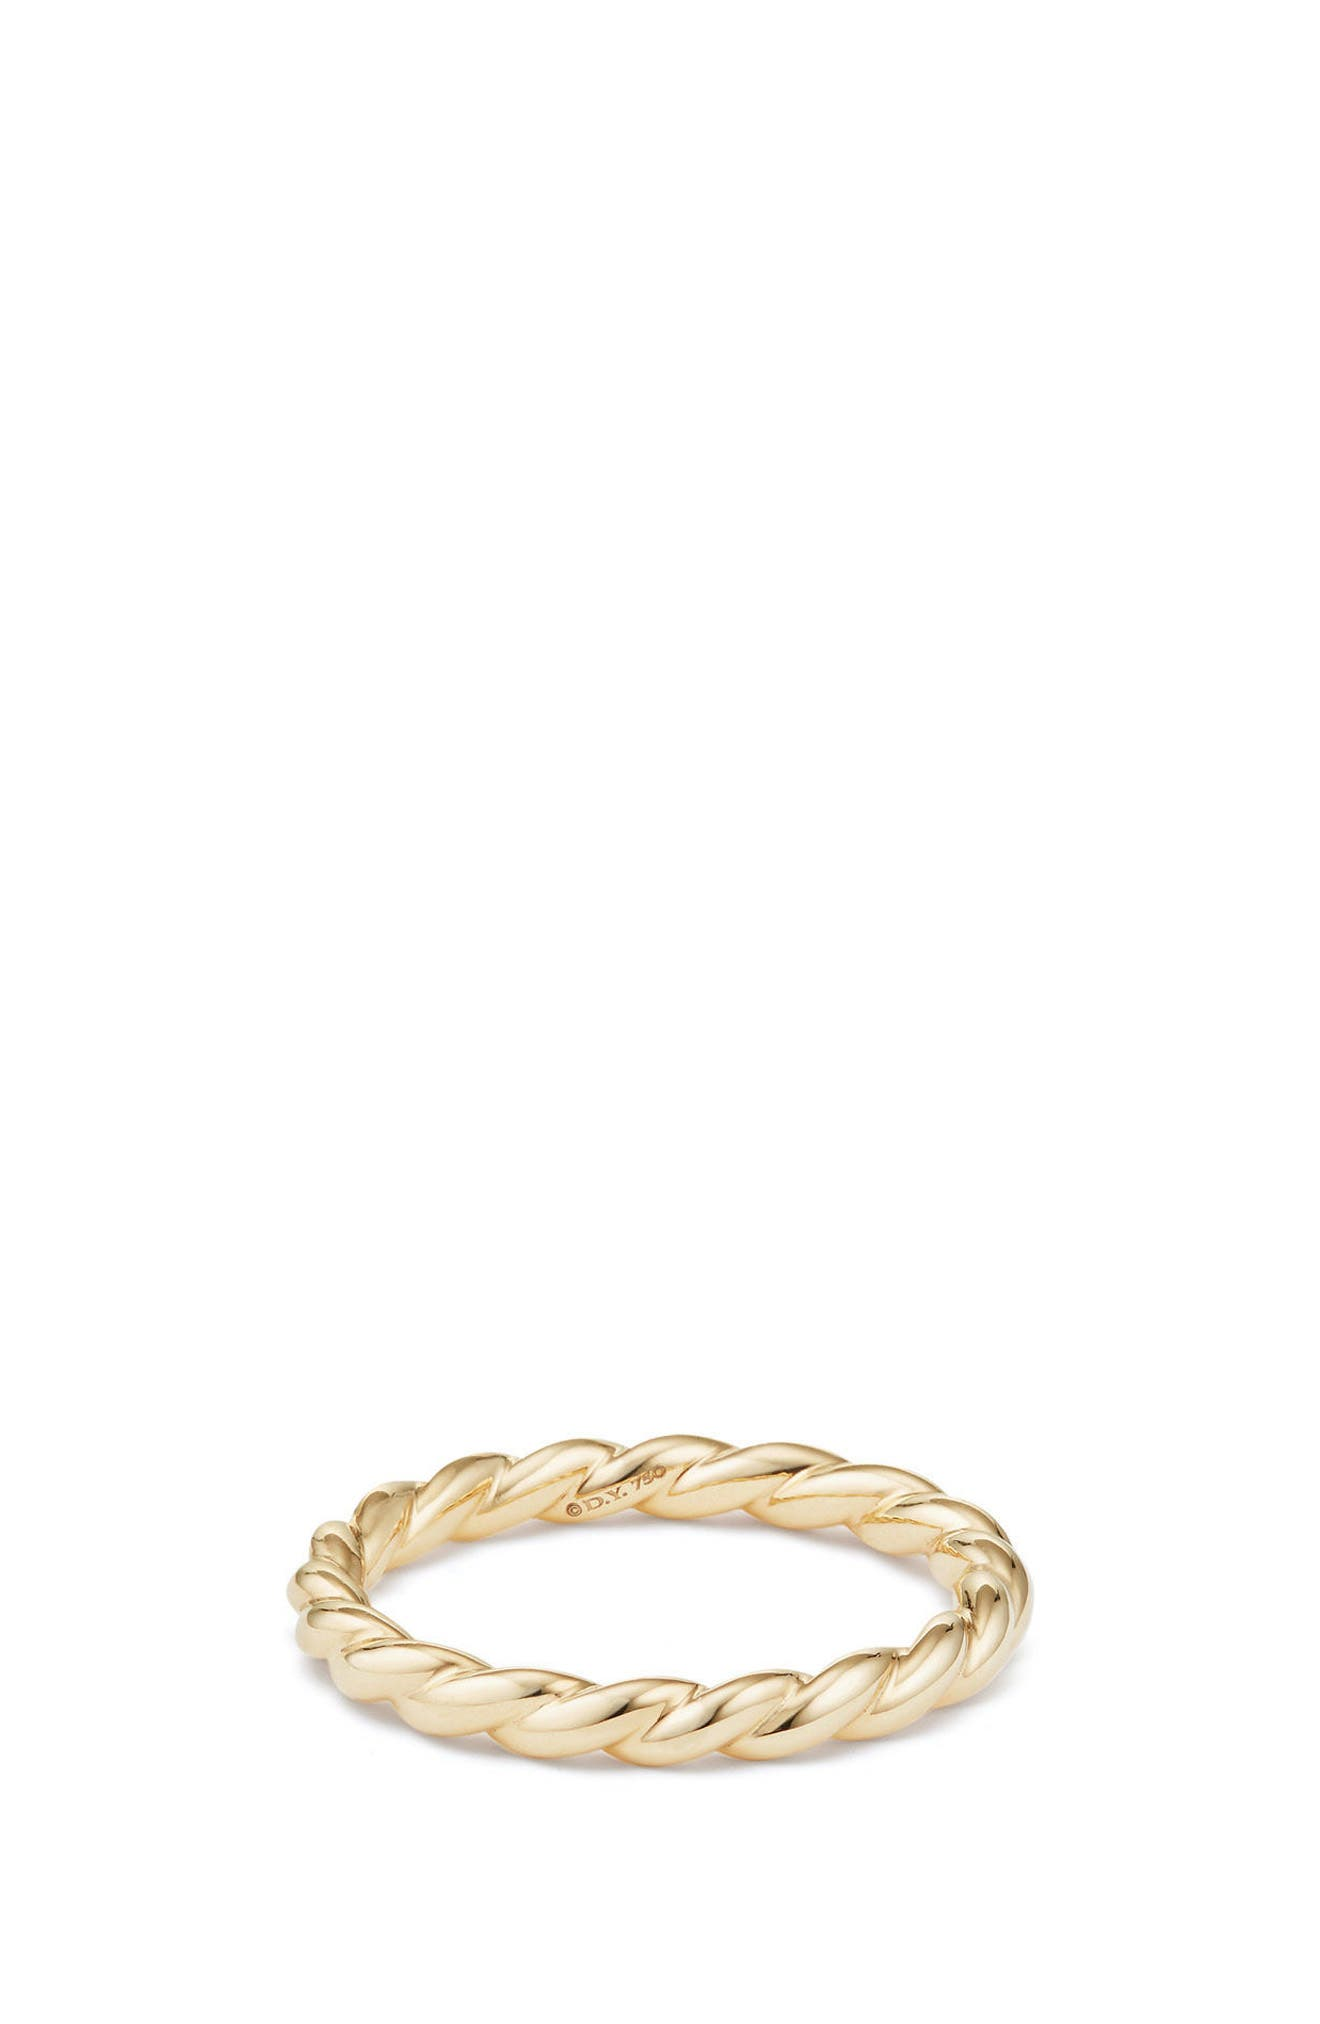 David Yurman , 2.7mm Paveflex Ring in 18K Gold